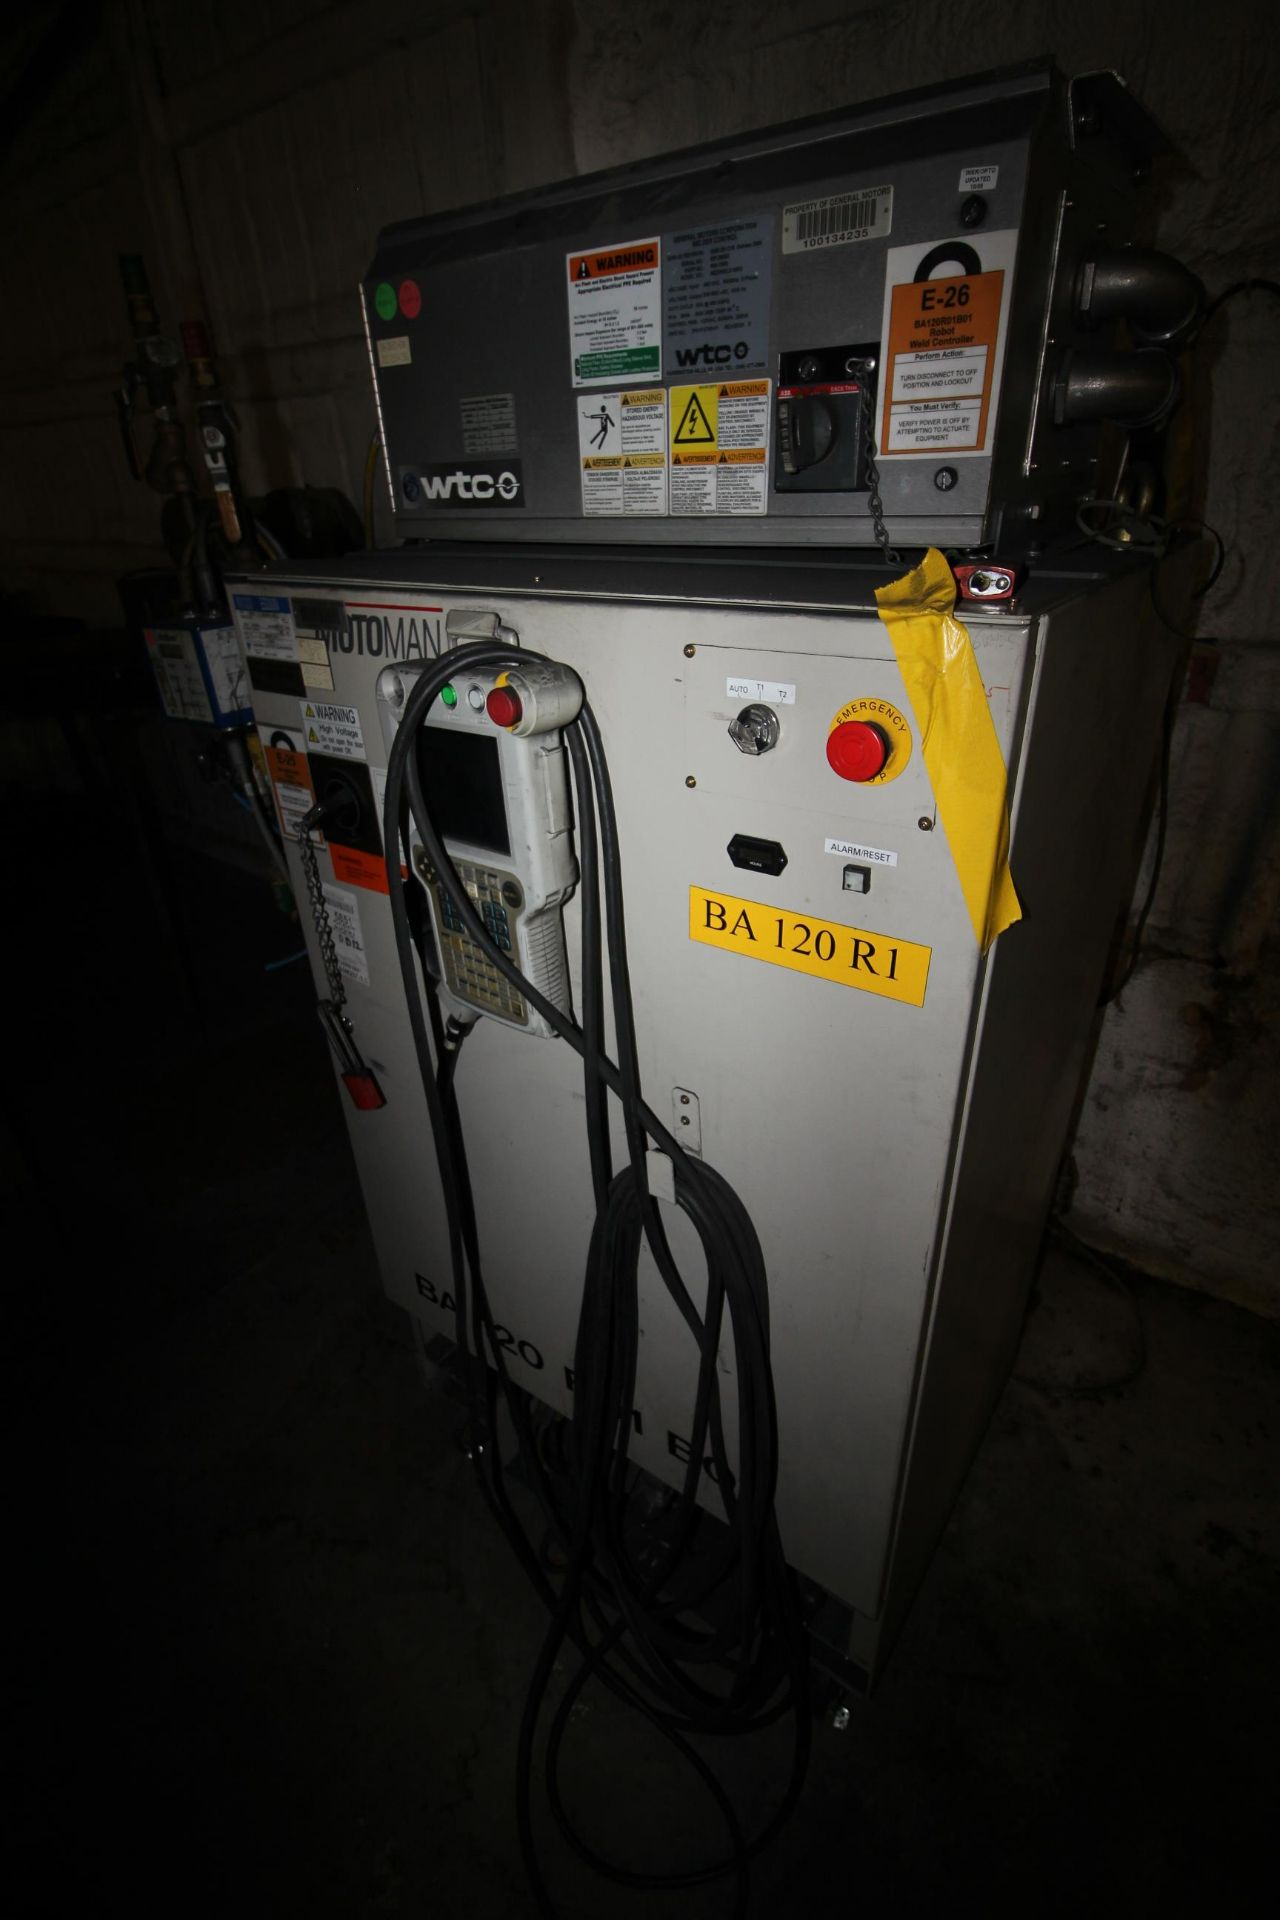 MOTOMAN ROBOT ES200N, NX100 CONTROL, SN S5M259-1-4, YEAR 12/05, CABLES AND TEACH PENDANT - Image 8 of 11